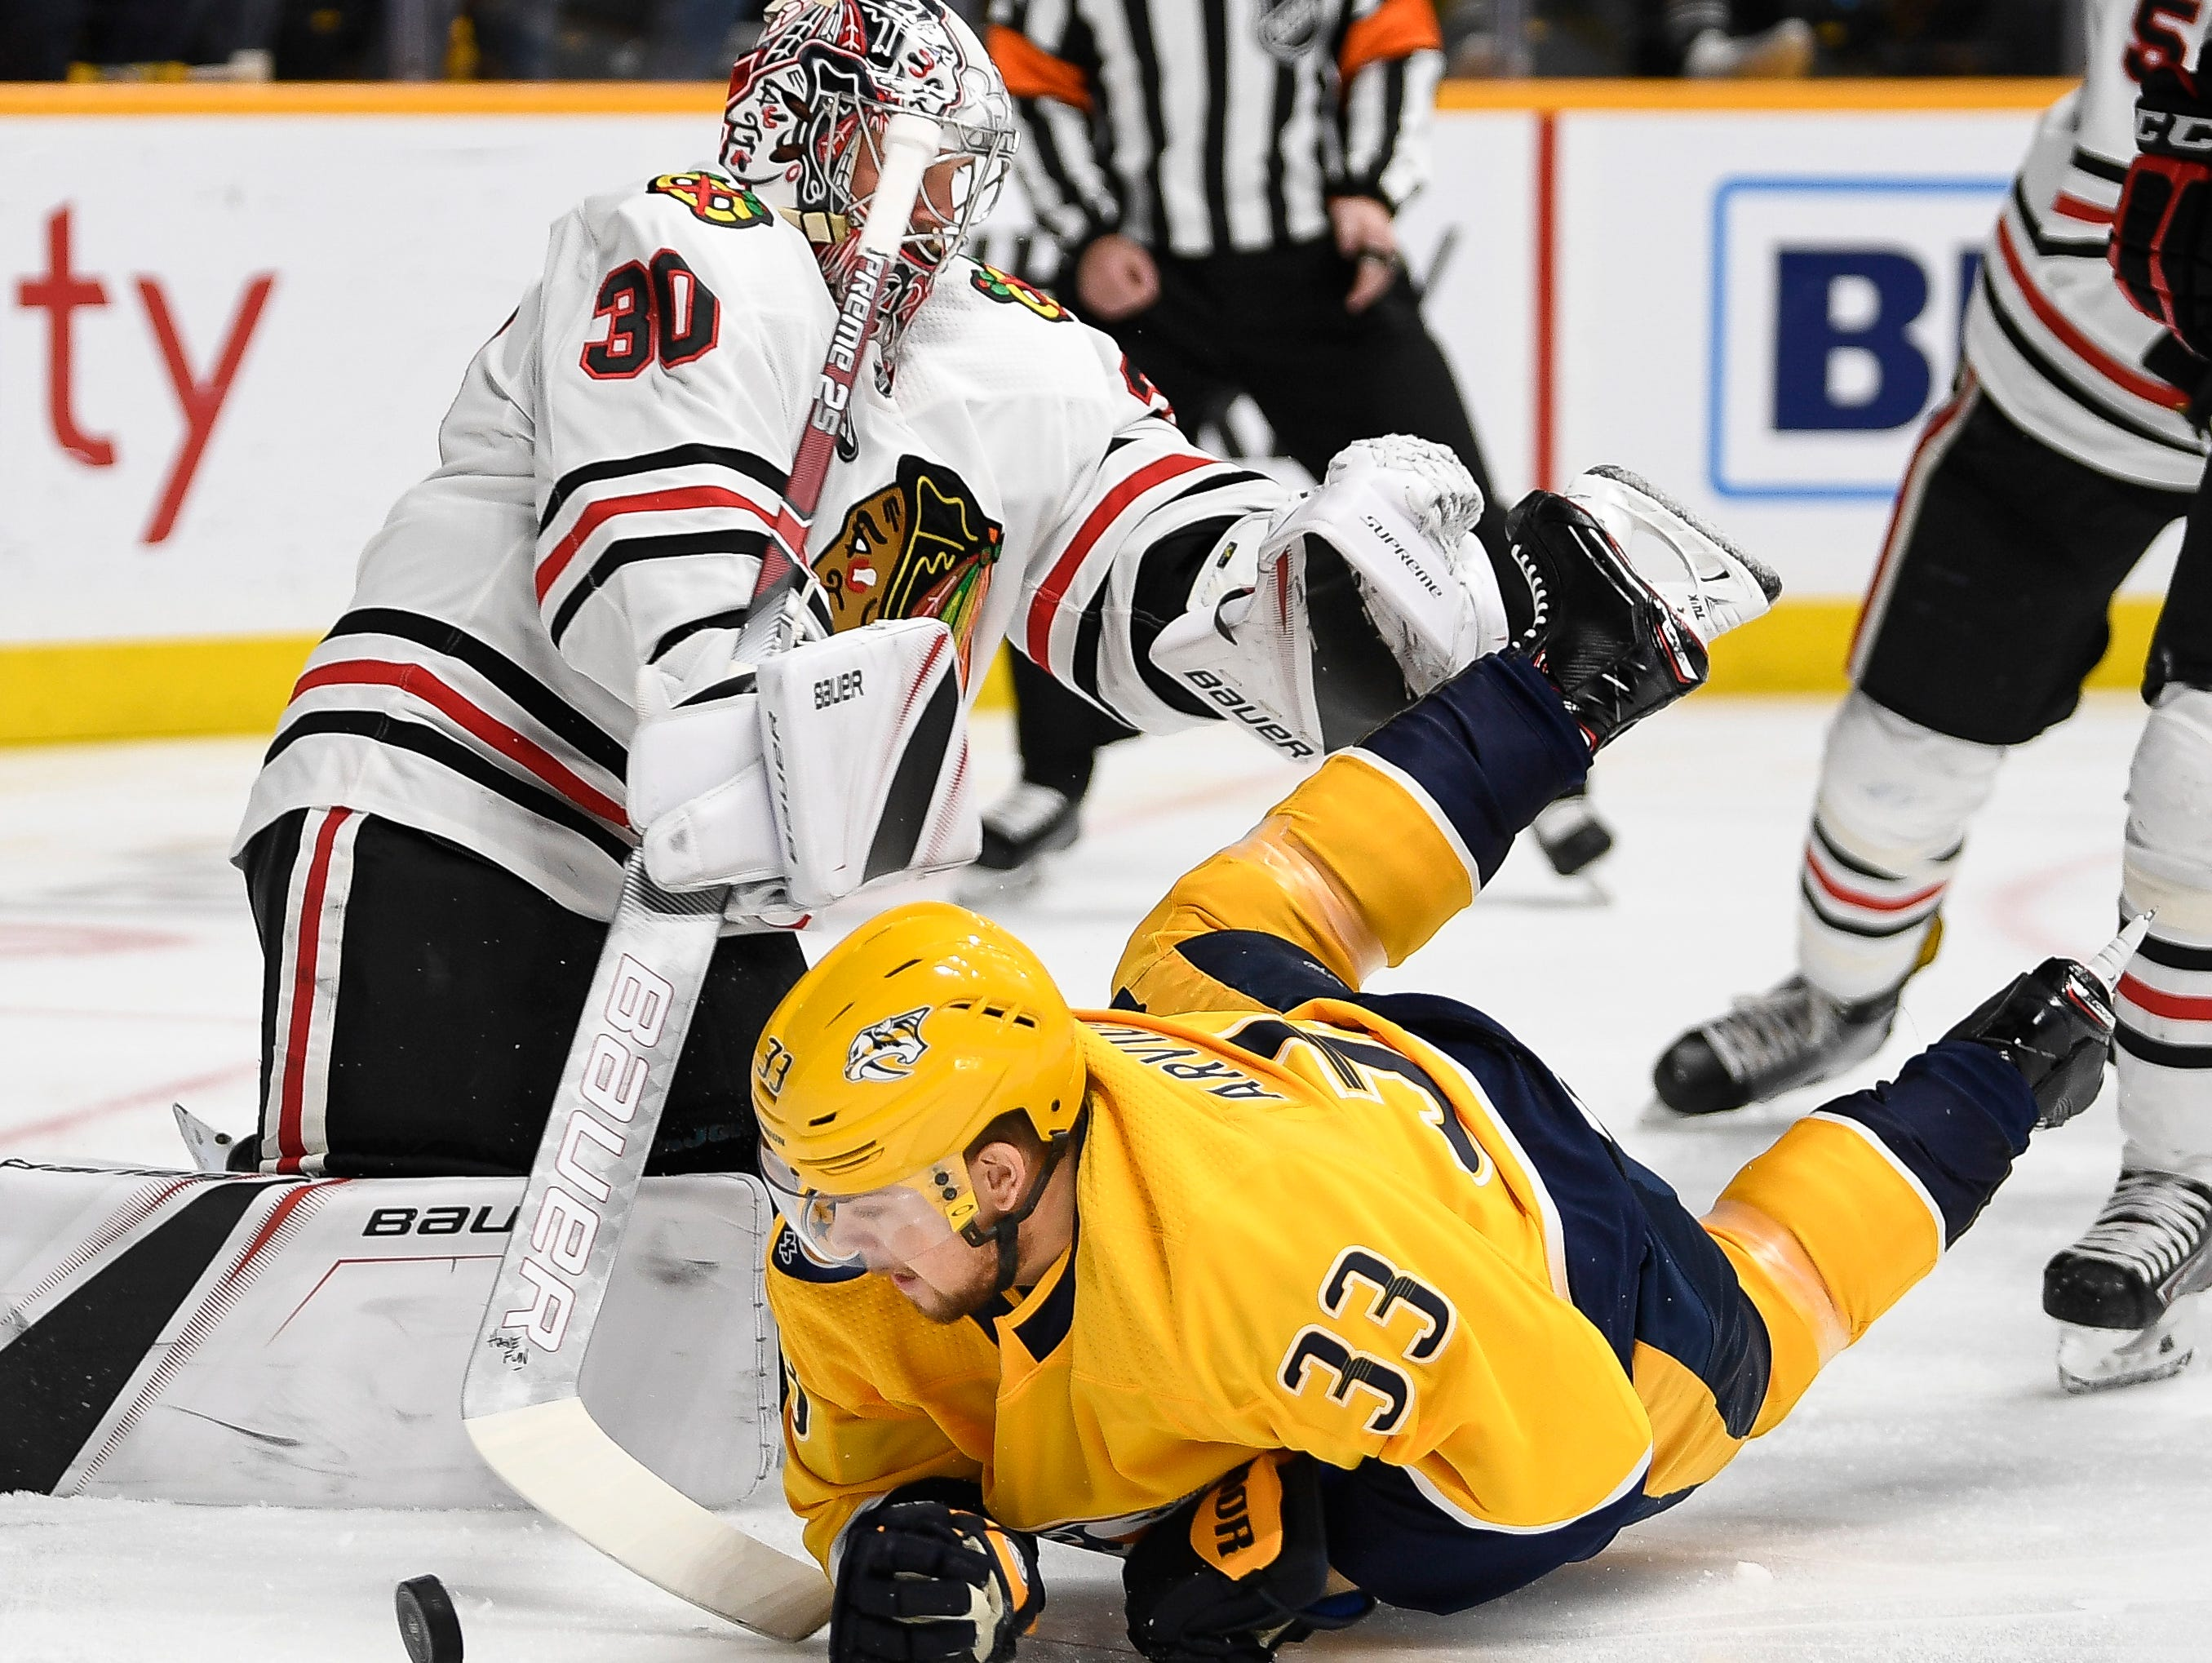 Nashville Predators right wing Viktor Arvidsson (33) falls to the ice beside Chicago Blackhawks goaltender Cam Ward (30) during the first period at Bridgestone Arena in Nashville, Tenn., Saturday, April 6, 2019.